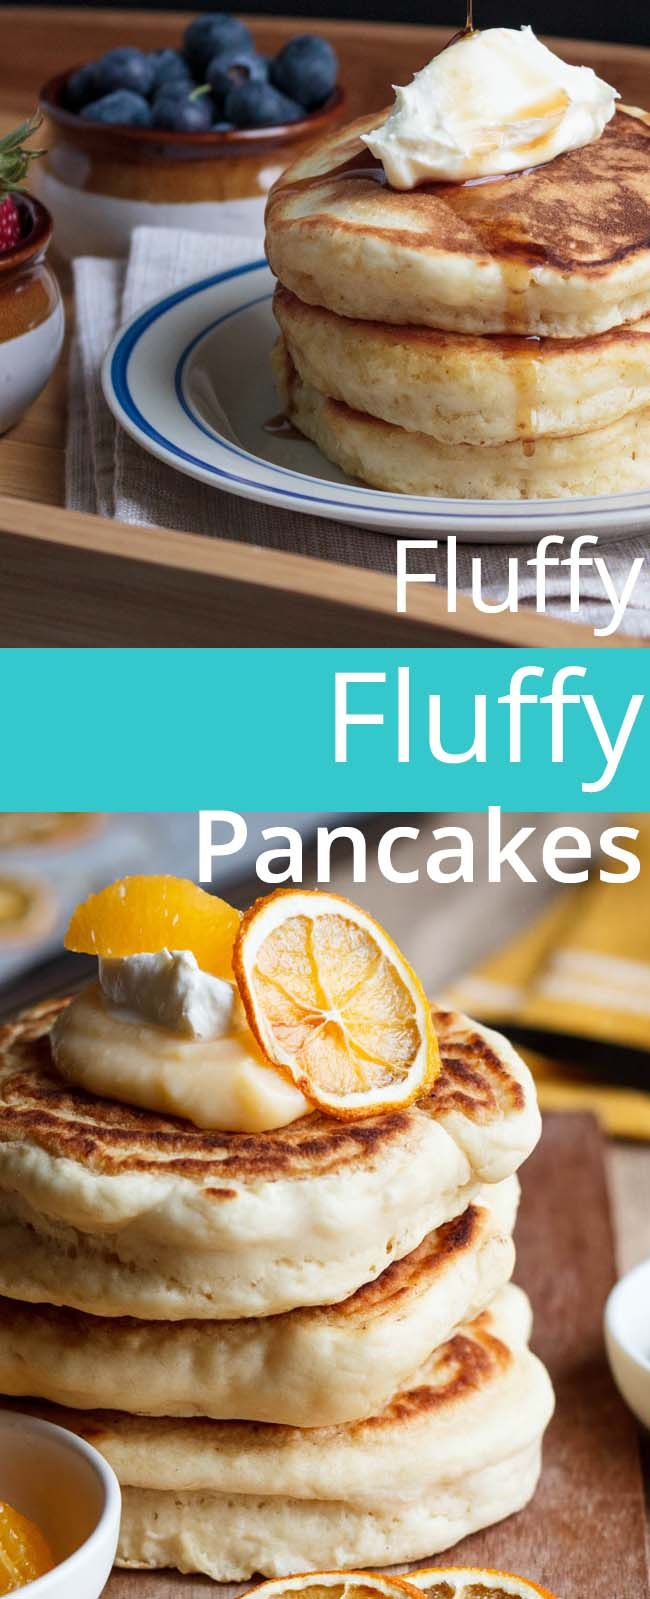 FLUFFY FLUFFY PANCAKES: I have an obsession with pancakes (there are people out there who don't - what??) These pancakes are my ode to all things light and fluffy.